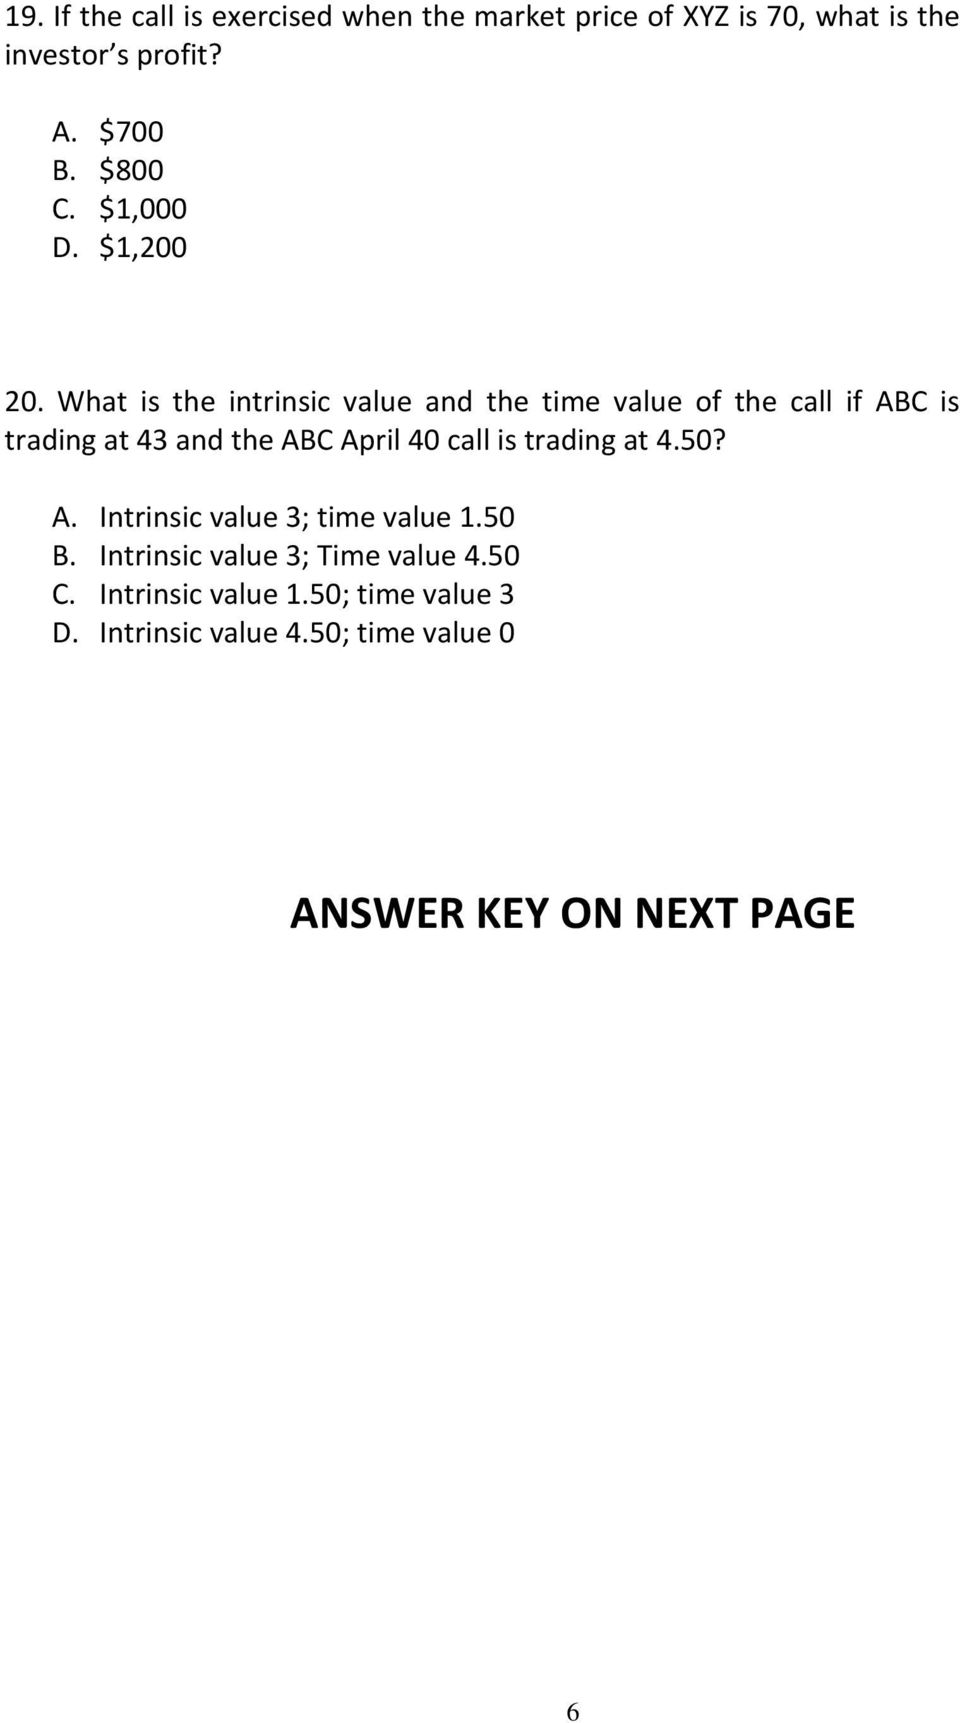 What is the intrinsic value and the time value of the call if ABC is trading at 43 and the ABC April 40 call